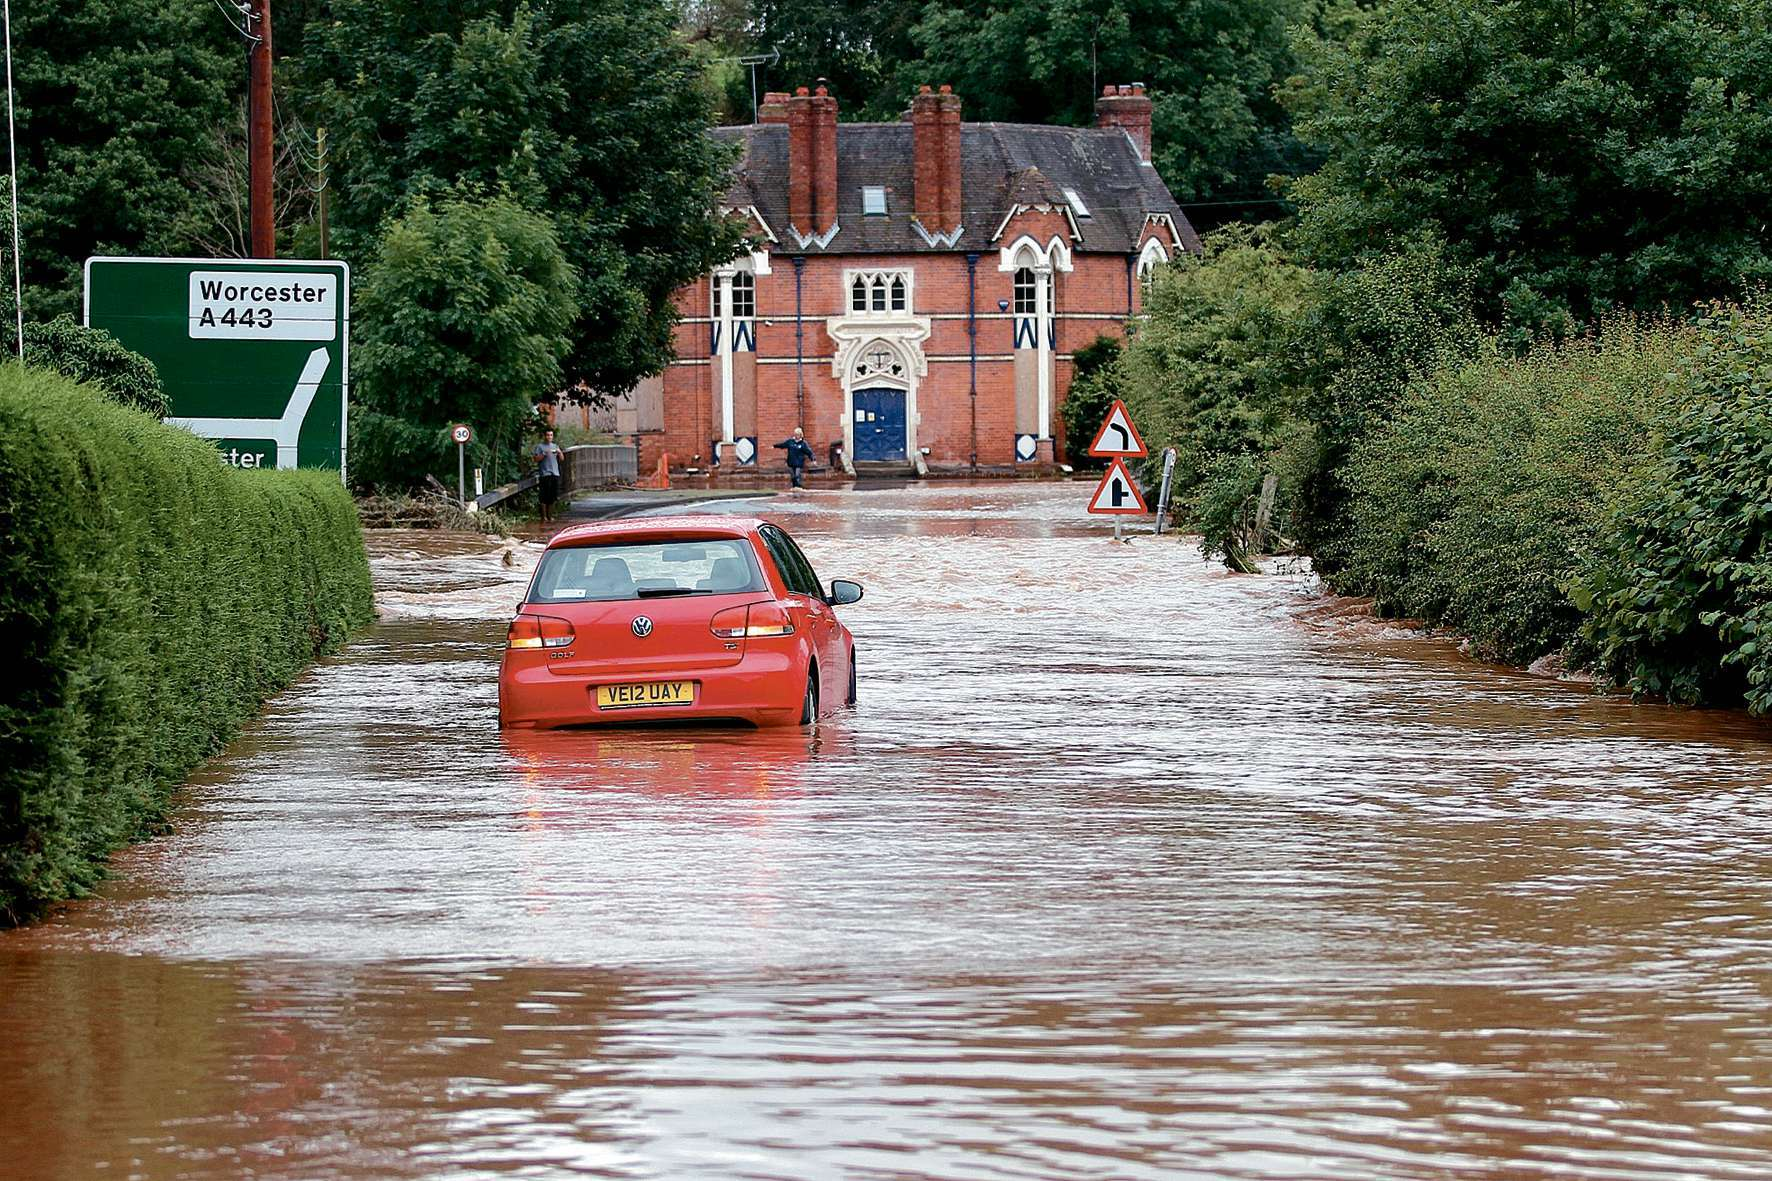 Homes and businesses in the Tenbury area could get additional funding for flood relief.